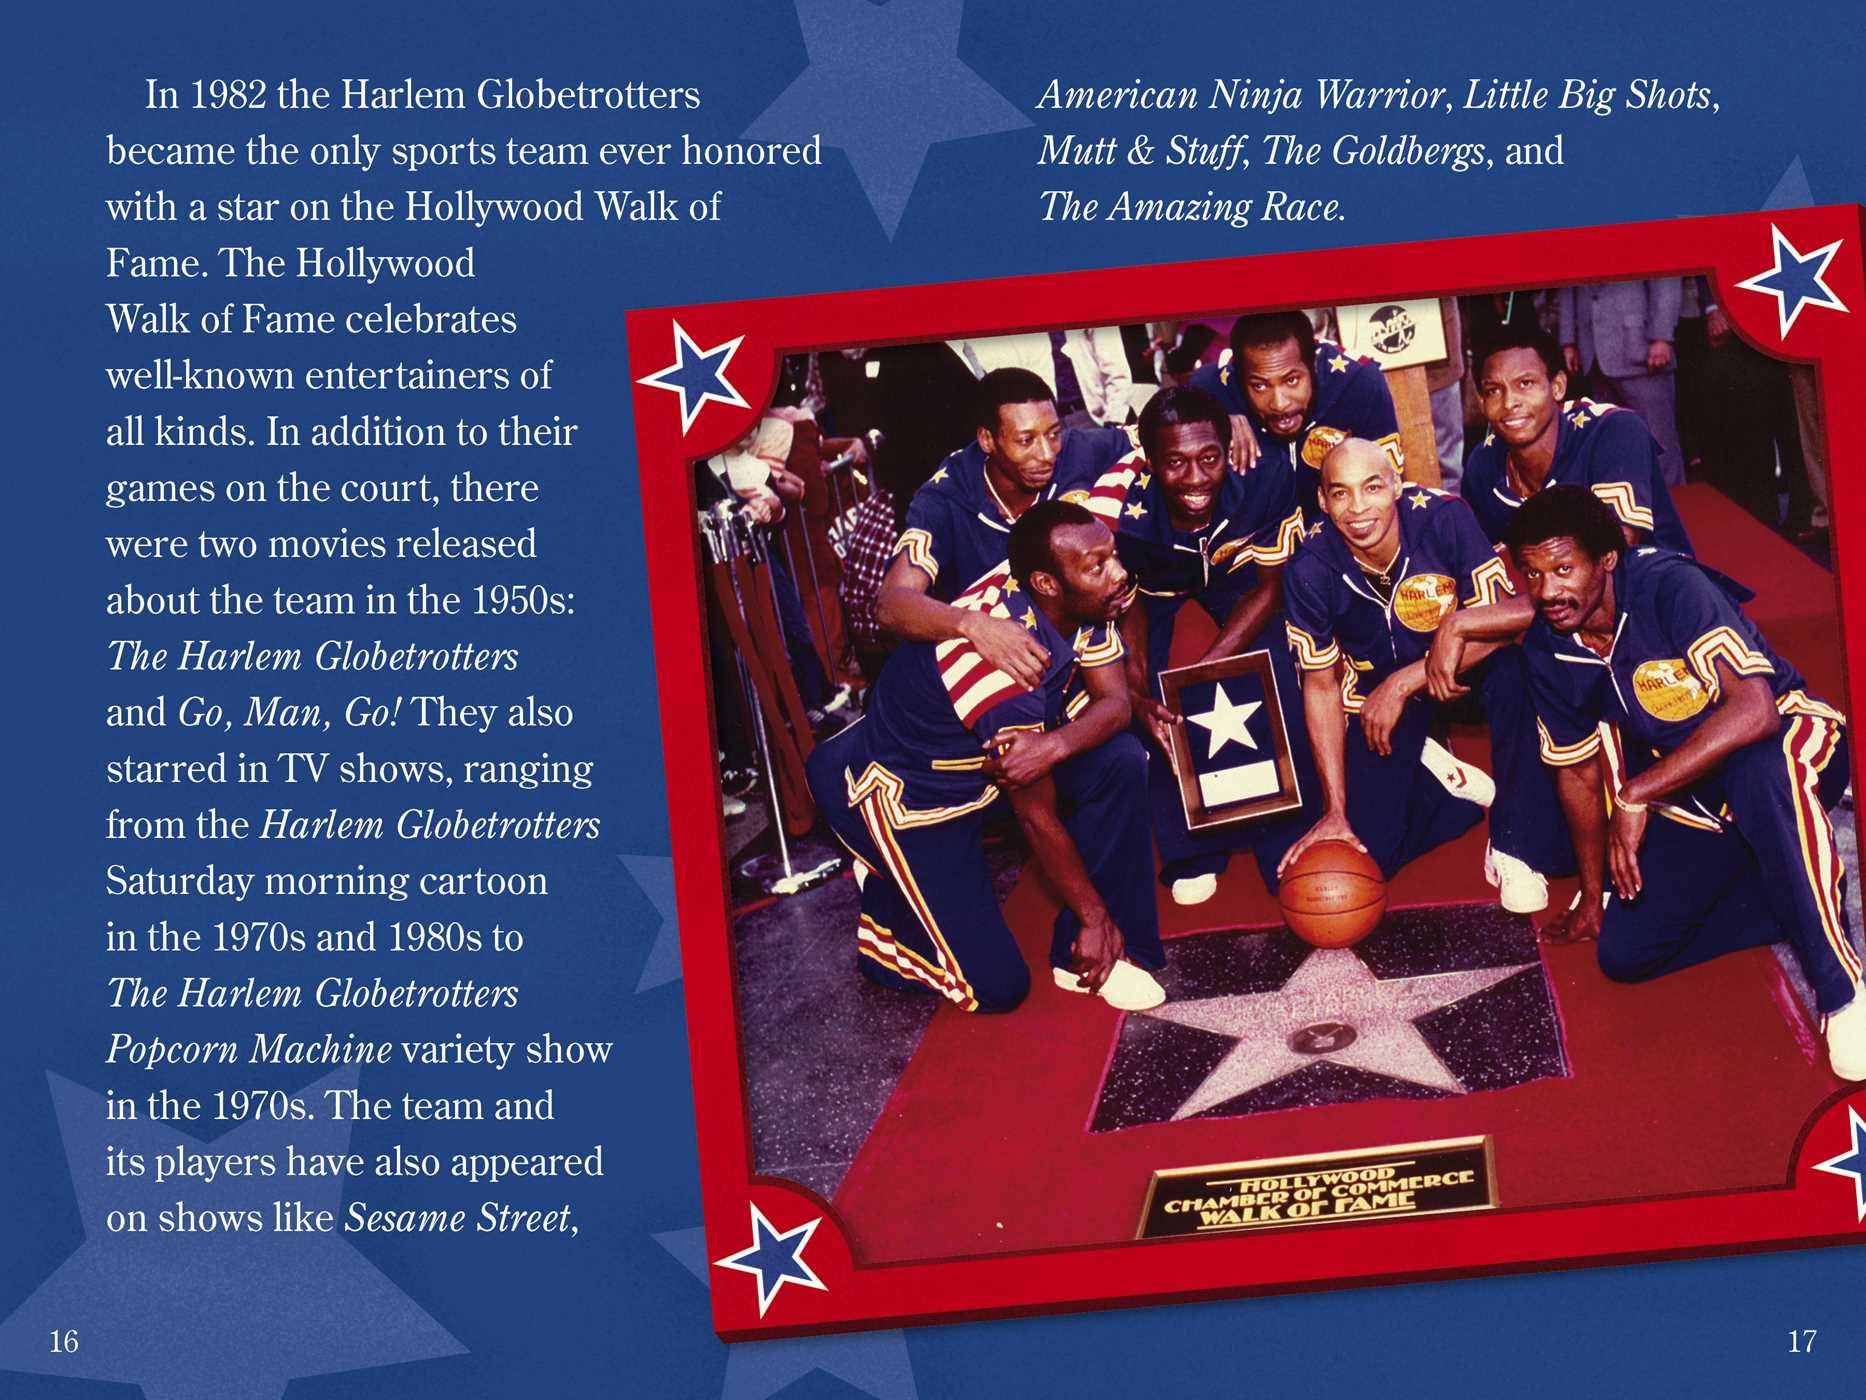 The superstar story of the harlem globetrotters 9781481487481.in06